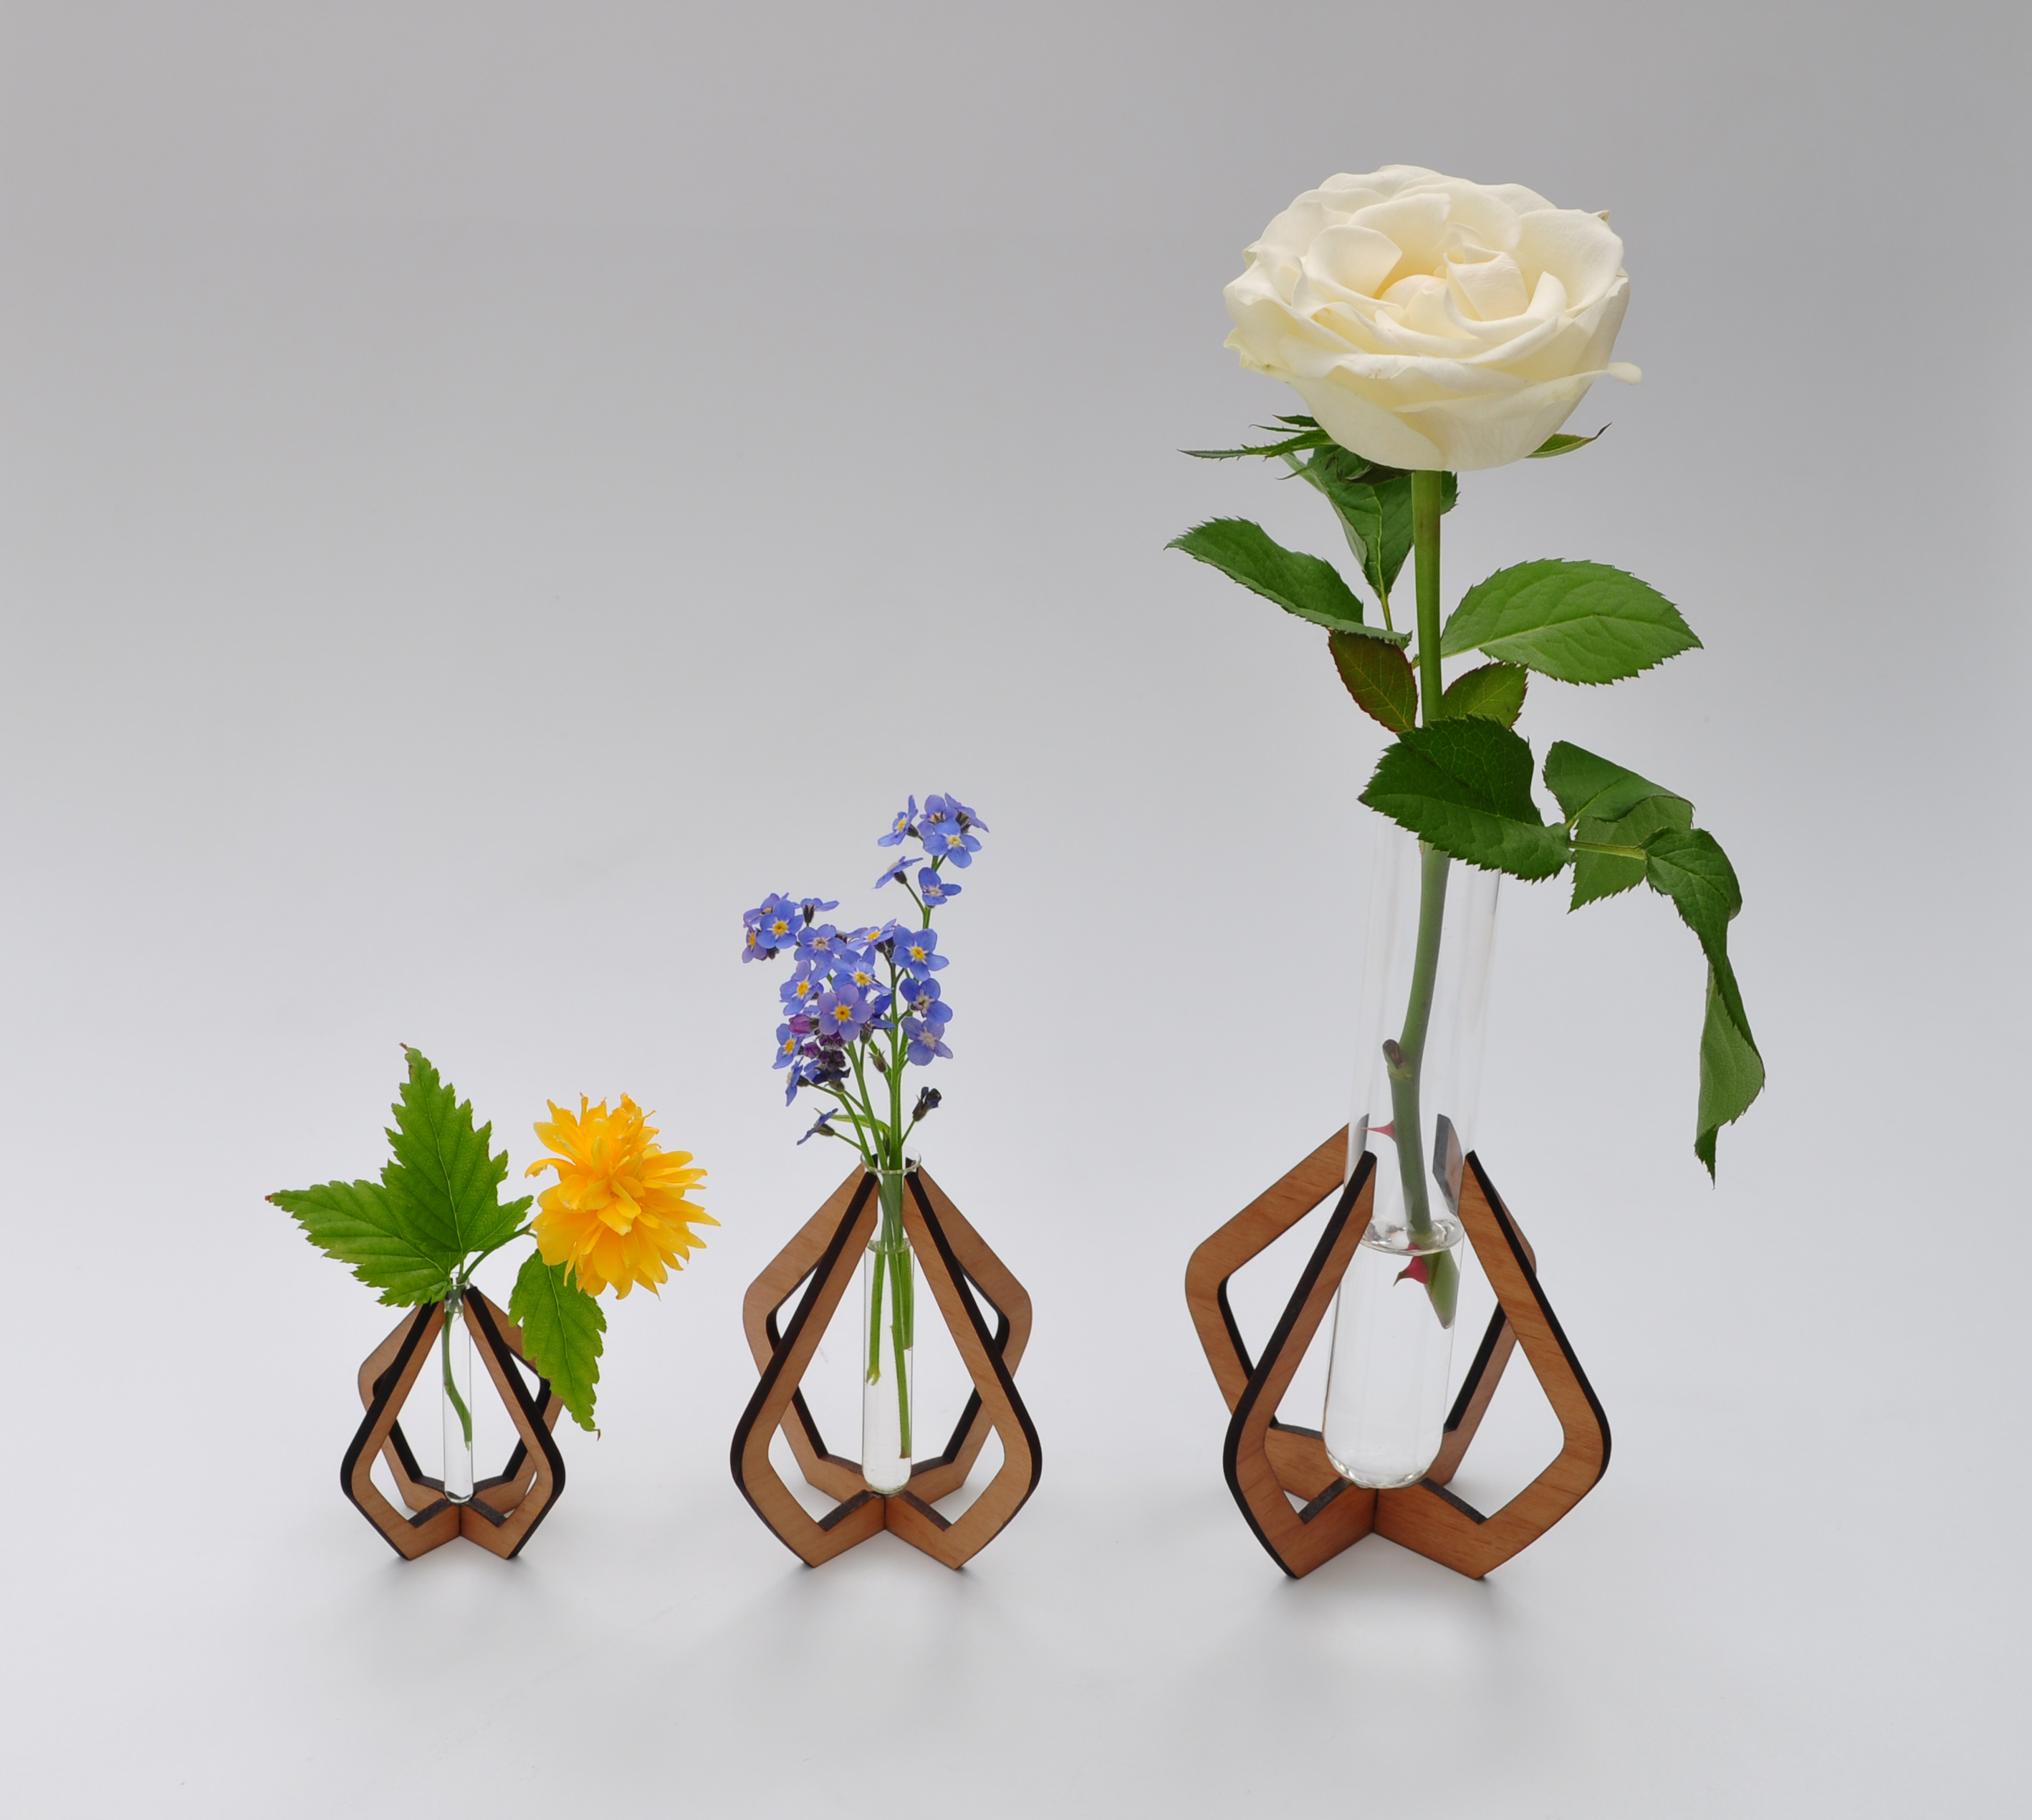 Pinch Vases in a row